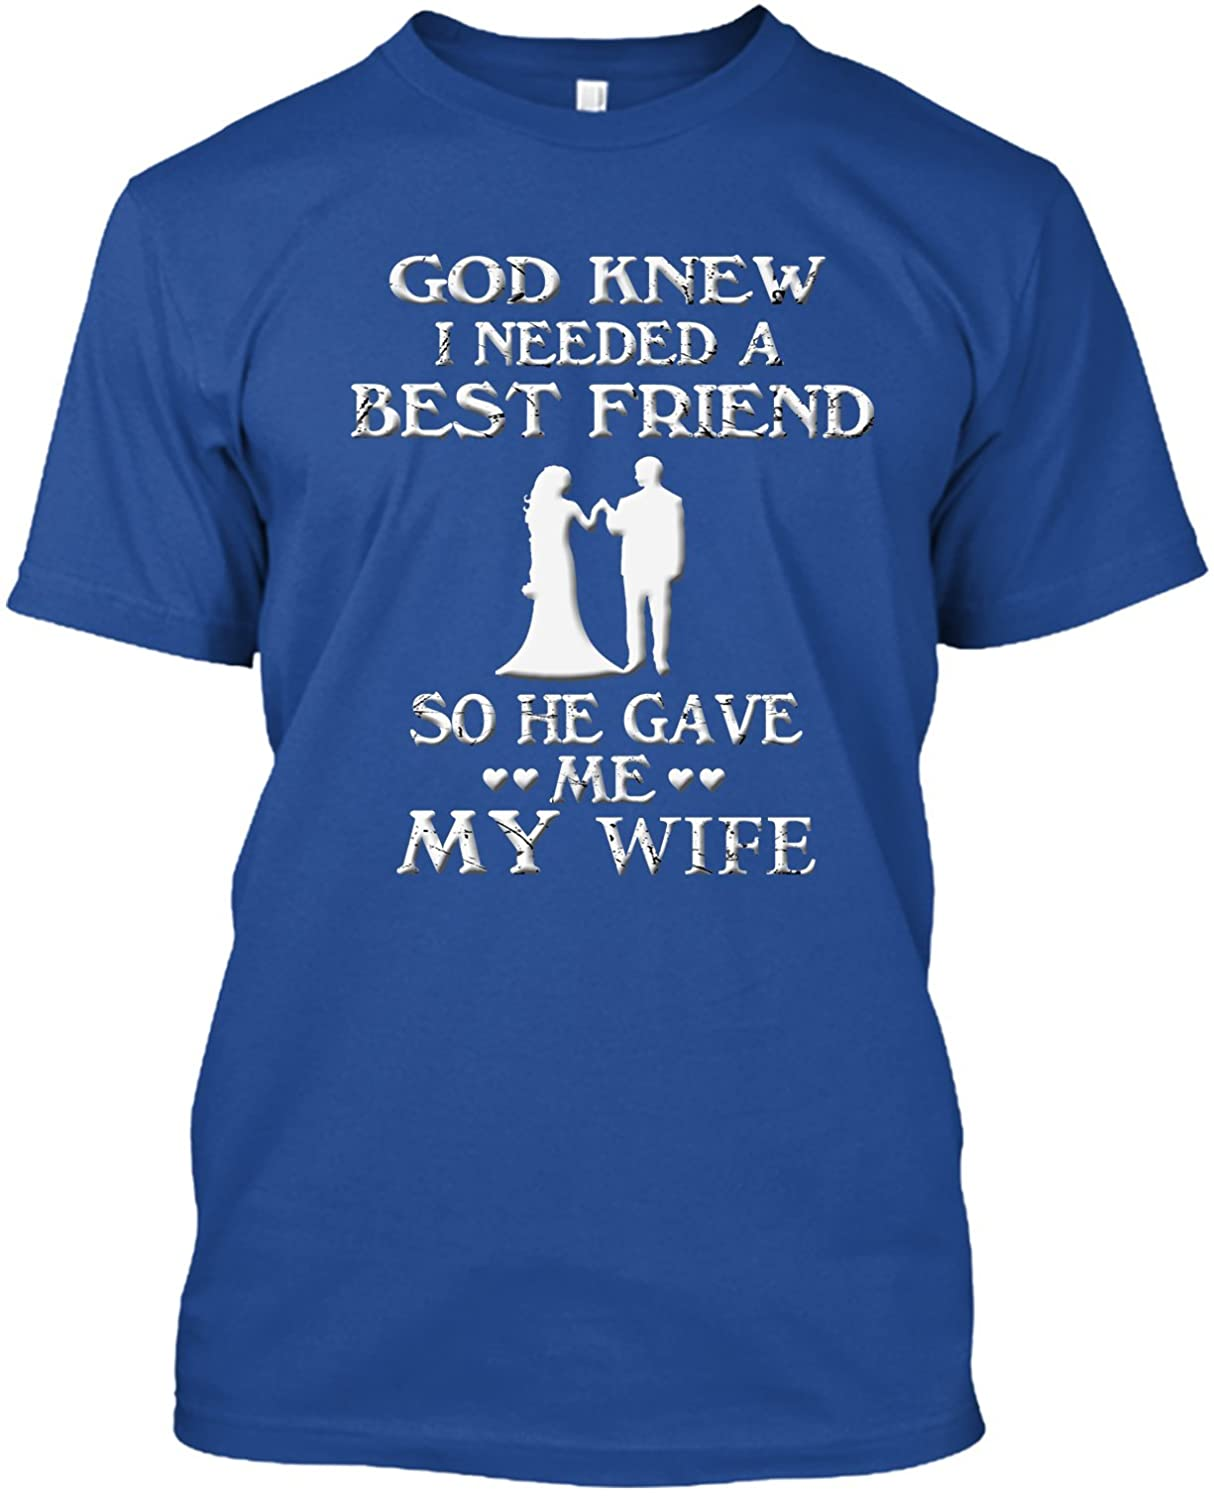 God knew I neeeded a best friend so he gave me my wife T-Shirt